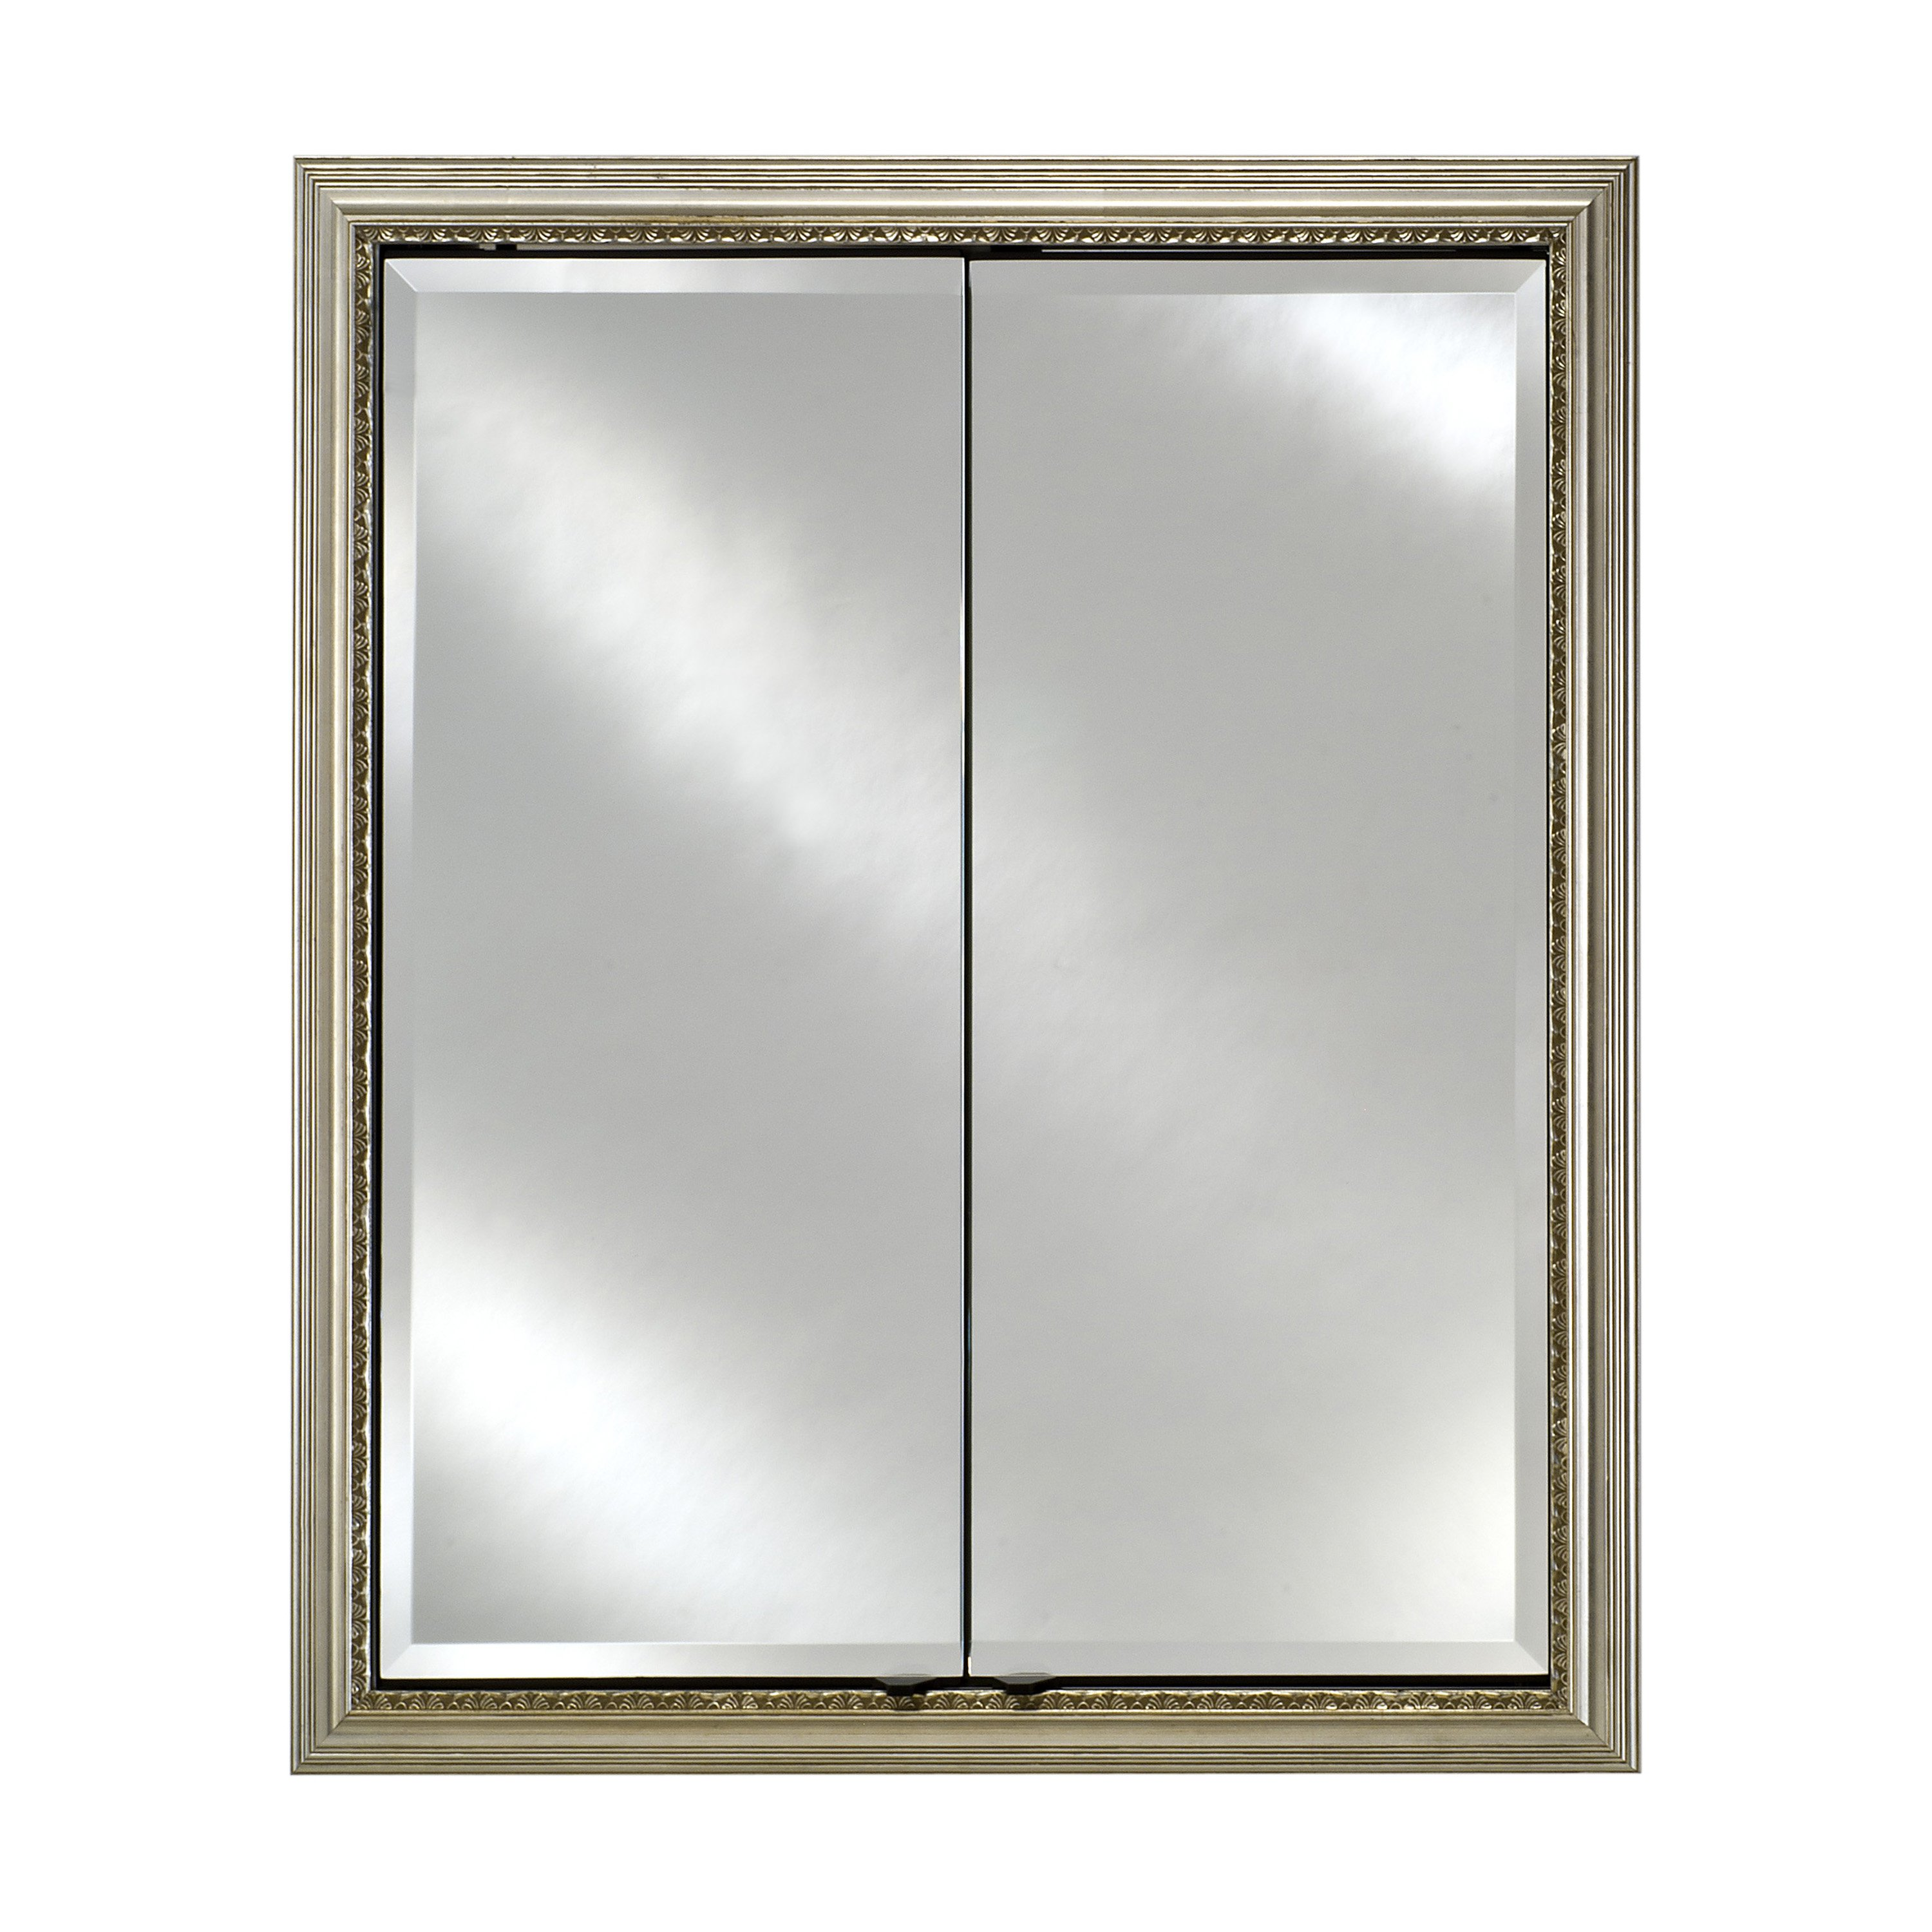 Afina Signature Collection Double Door 24W x 30H in. Recessed Medicine Cabinet